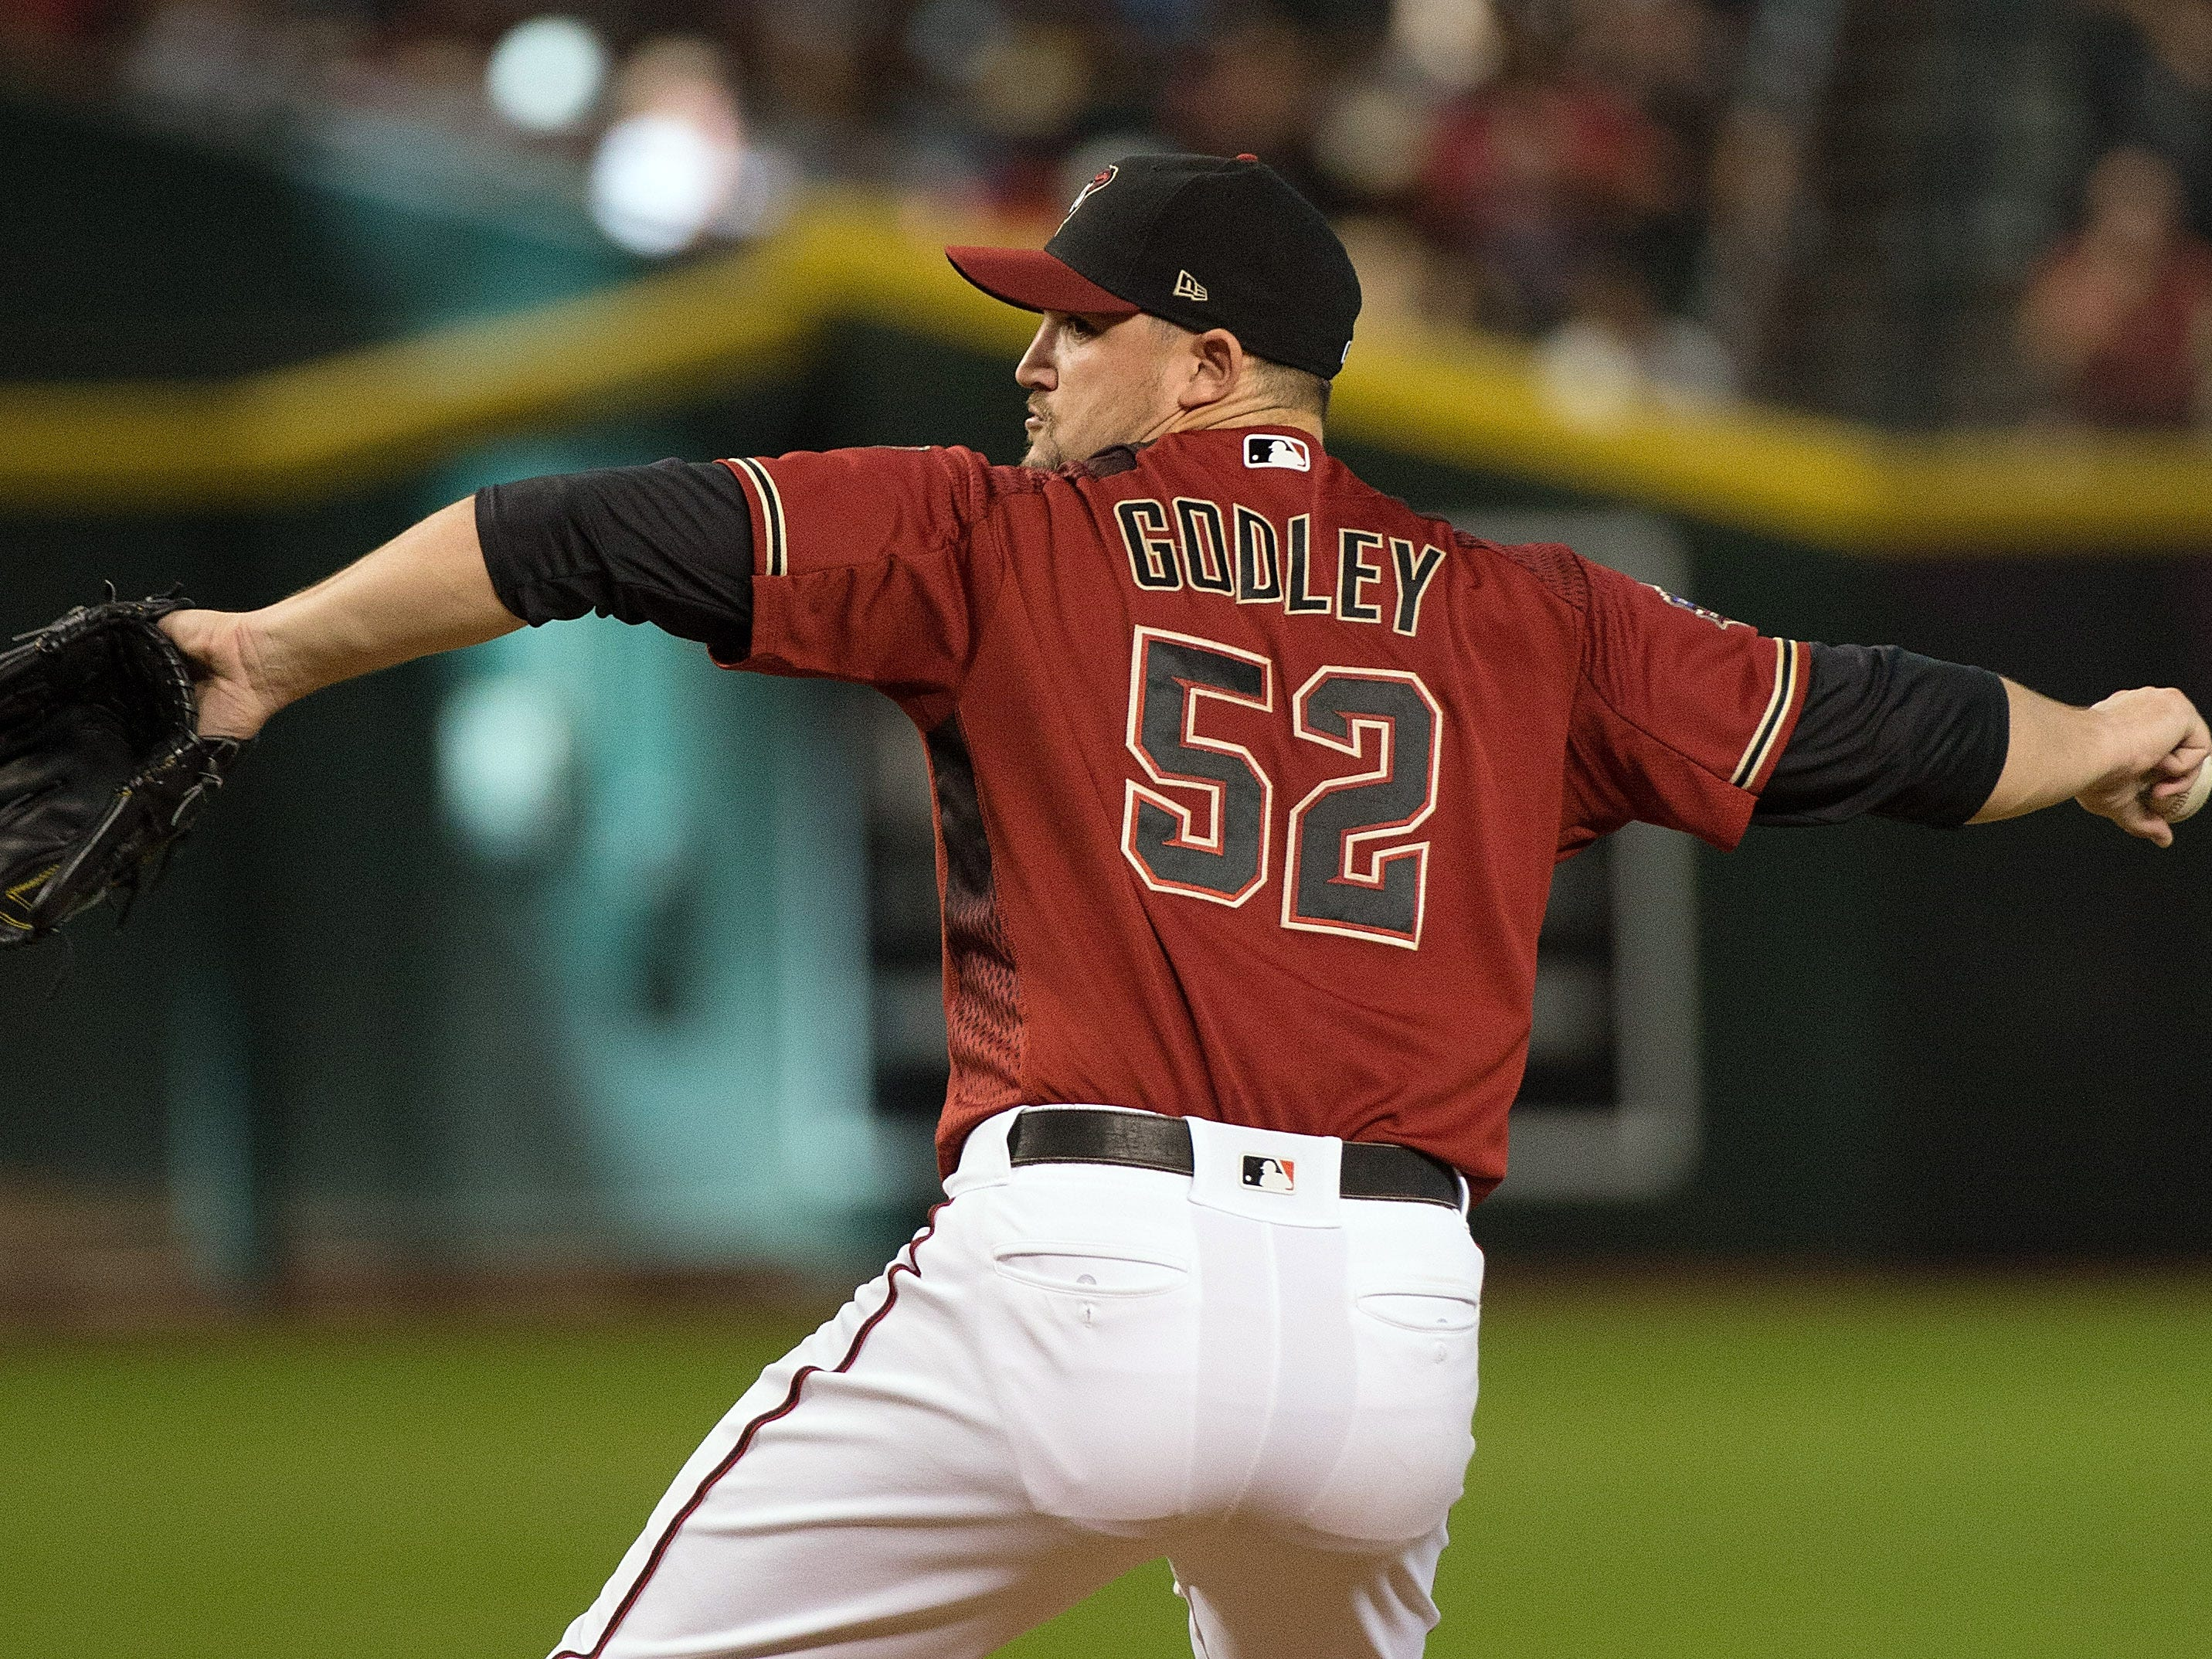 Sep 23, 2018; Phoenix, AZ, USA; Arizona Diamondbacks pitcher Zack Godley (52) on the mound during the second inning against the Colorado Rockies at Chase Field. Mandatory Credit: Allan Henry-USA TODAY Sports